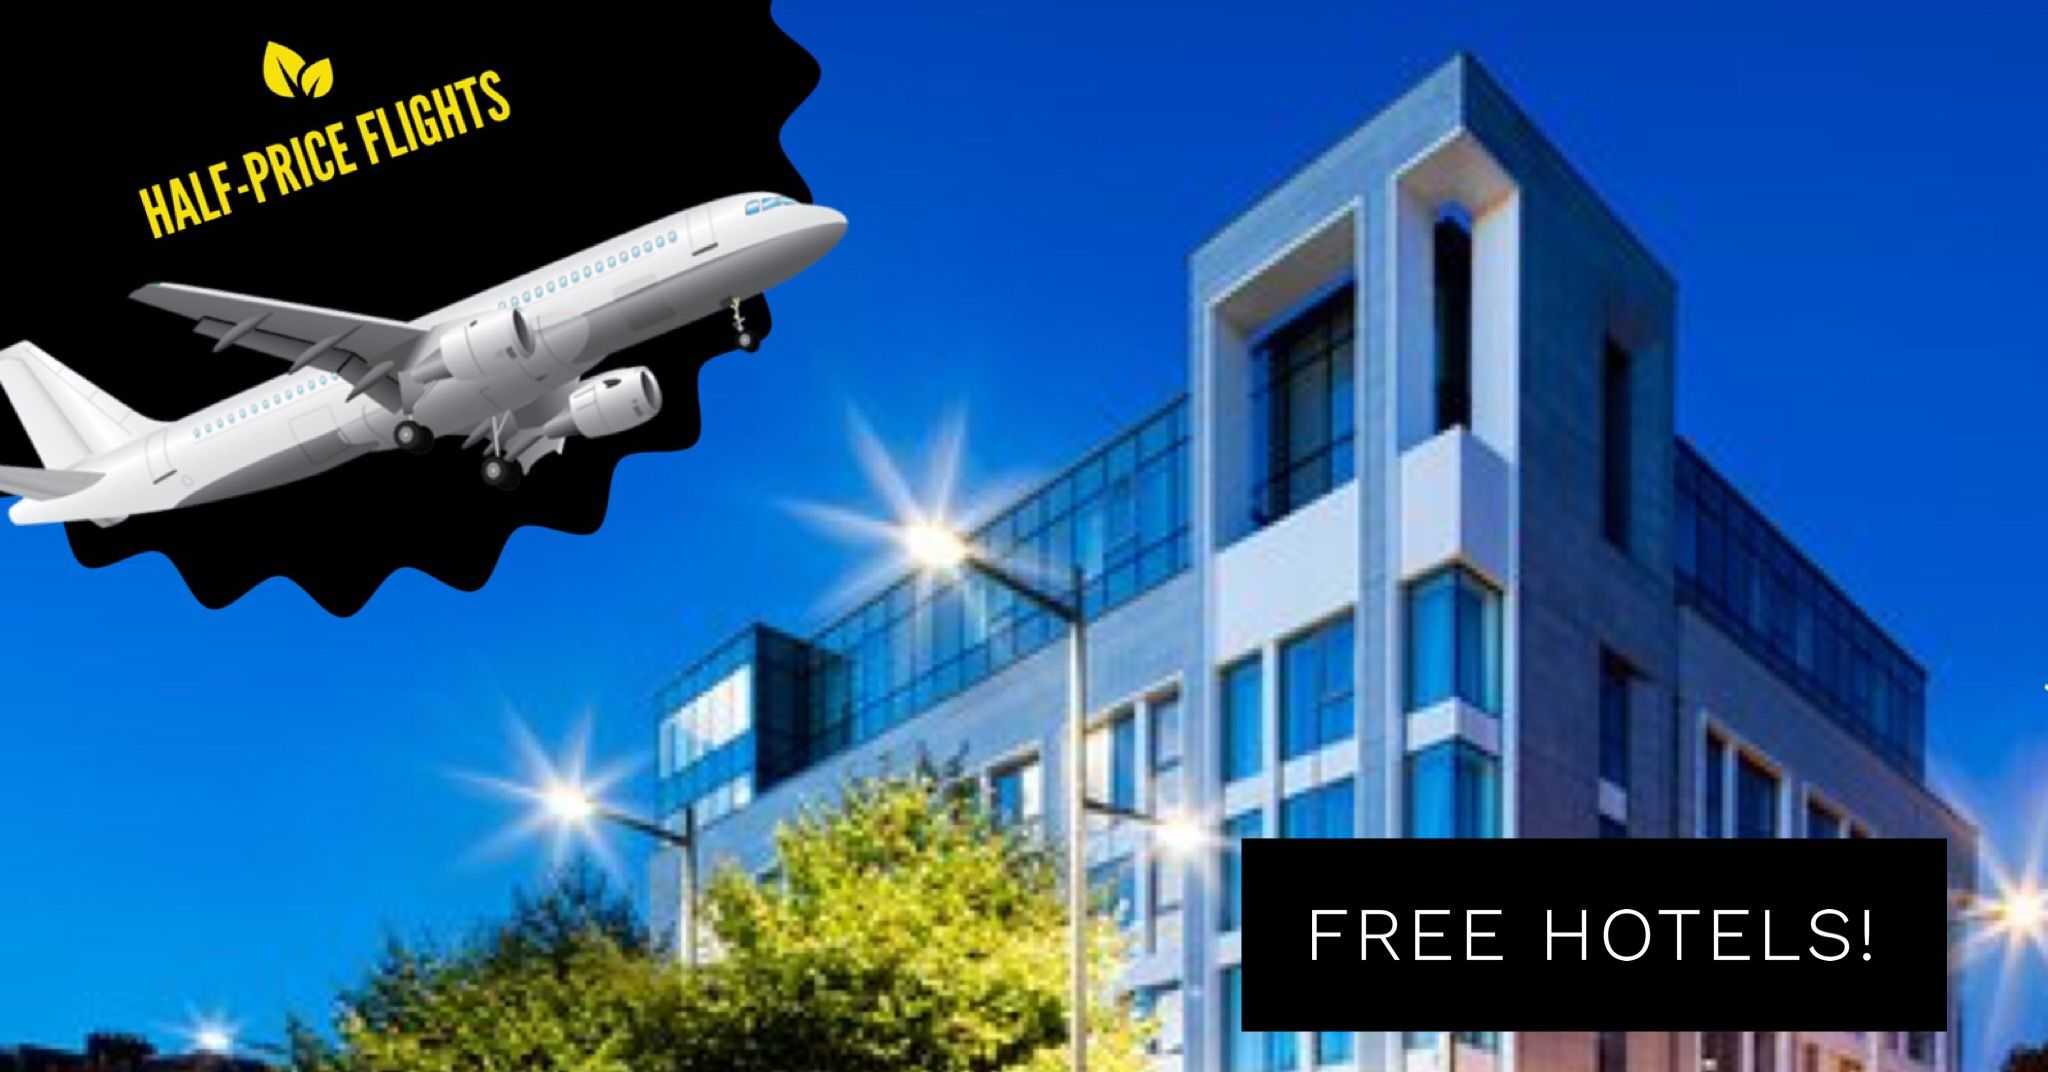 How To Sign Up For Half Price Flights And Free Hotels As A Mystery Per With Sqm By Nora Dunn Click Here Www Ca Welcome